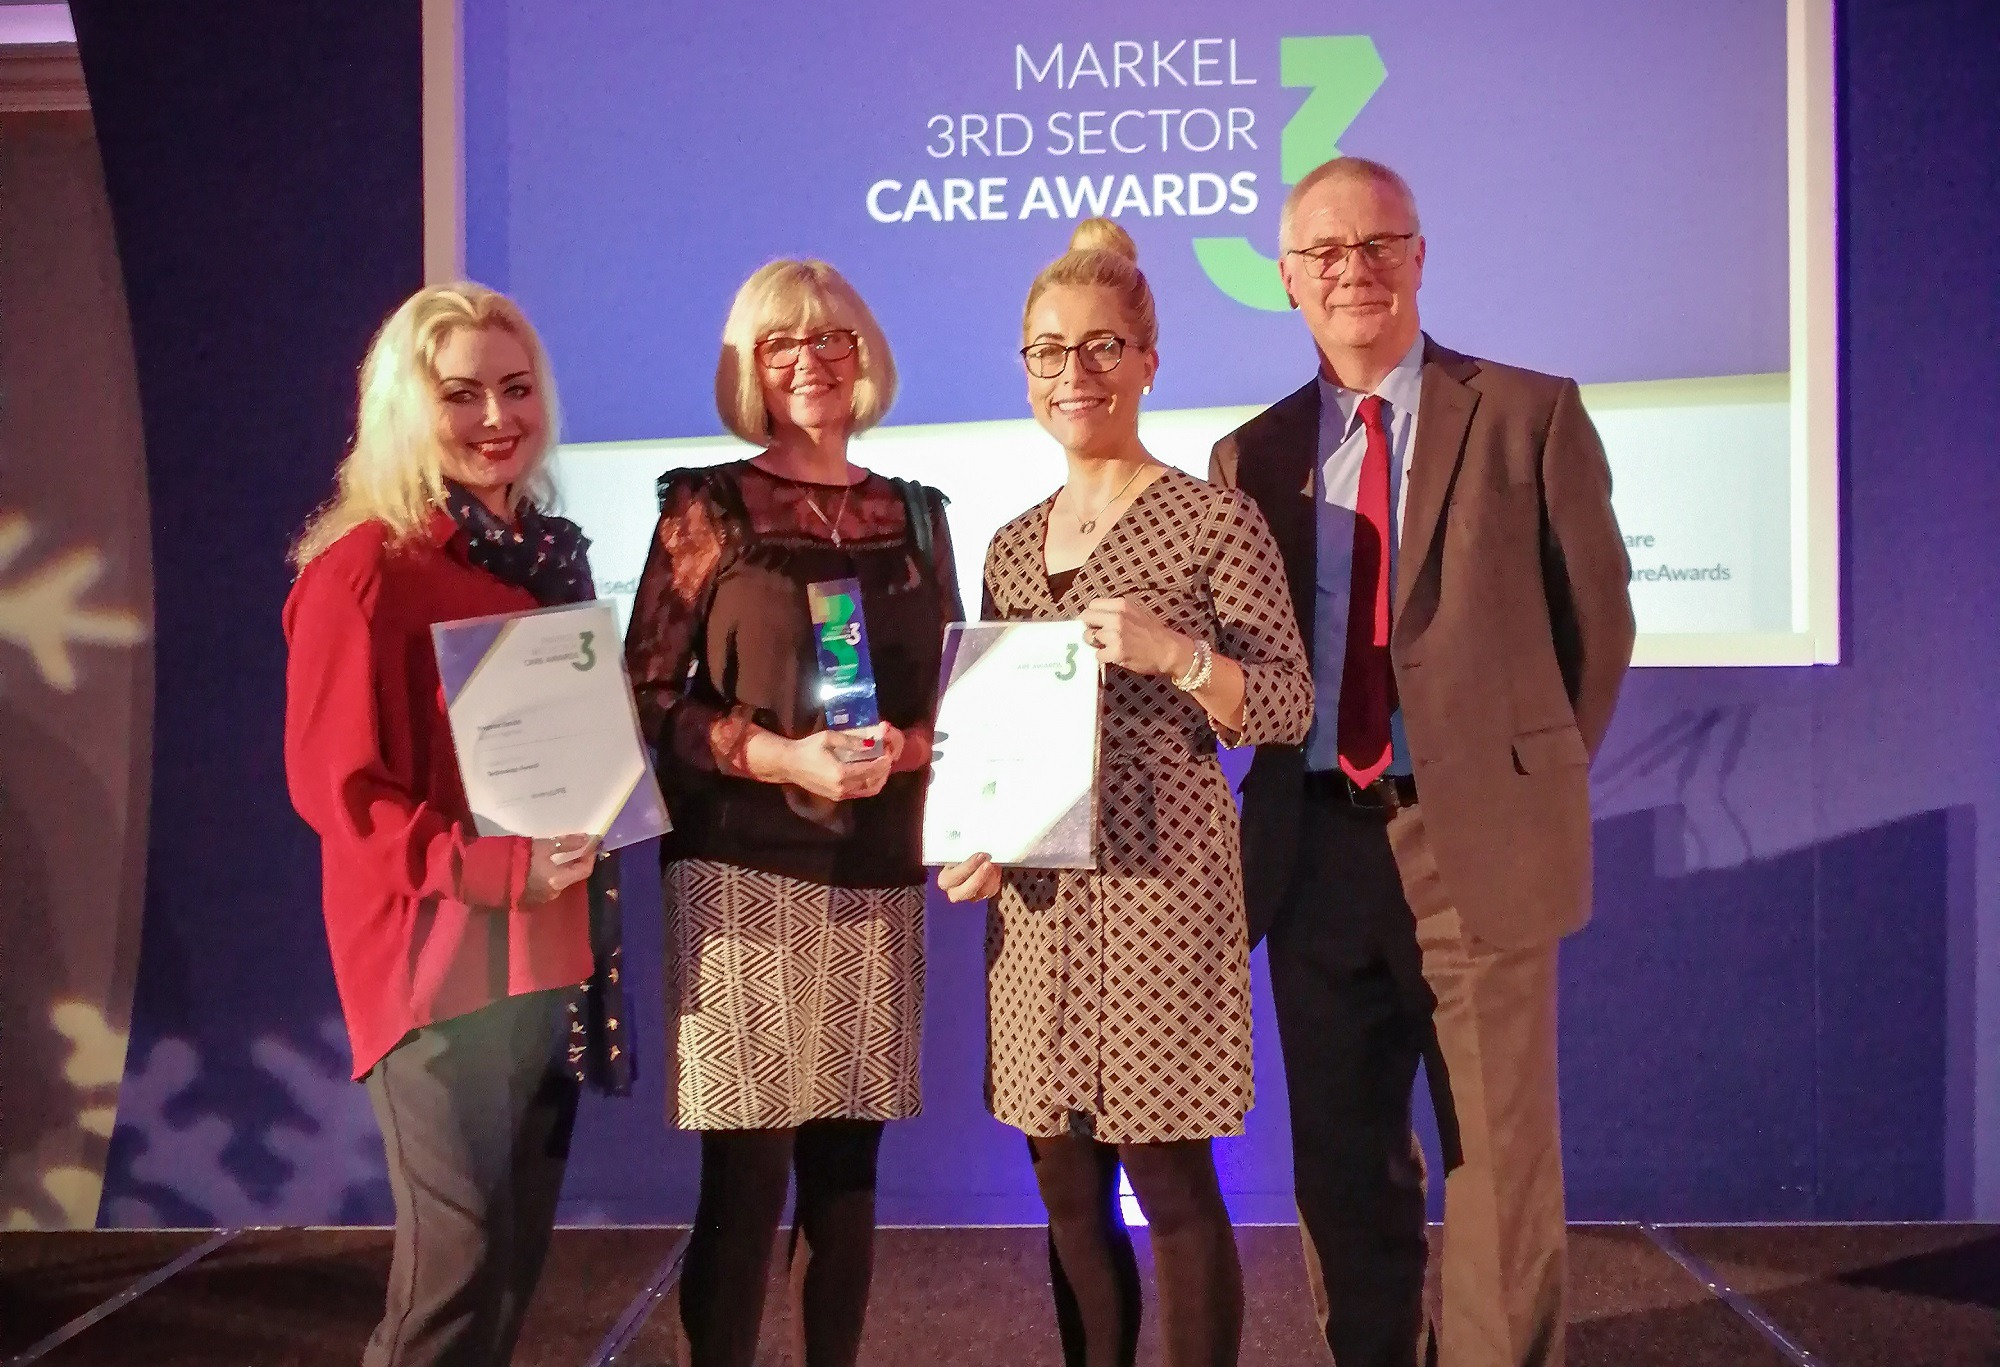 Winners of the 3rd Sector Care awards